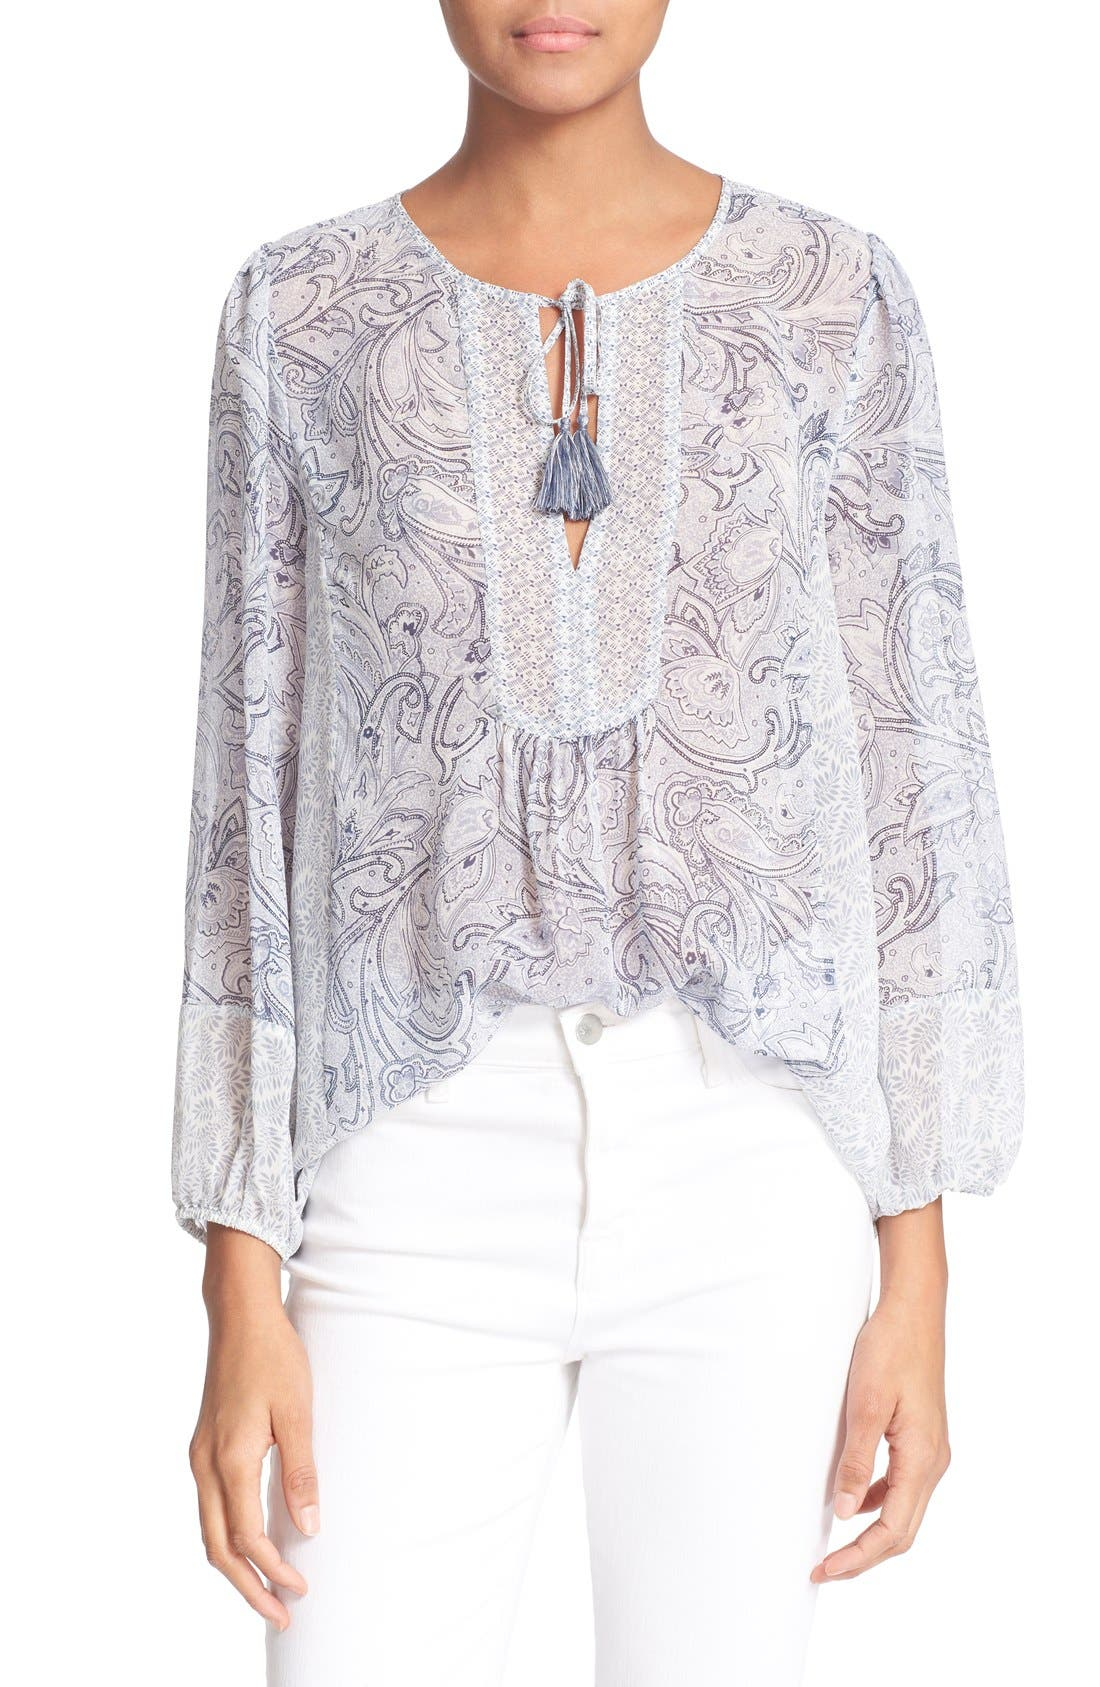 JOIE,                             'Acerila' Mixed Print Silk Peasant Top,                             Main thumbnail 1, color,                             430